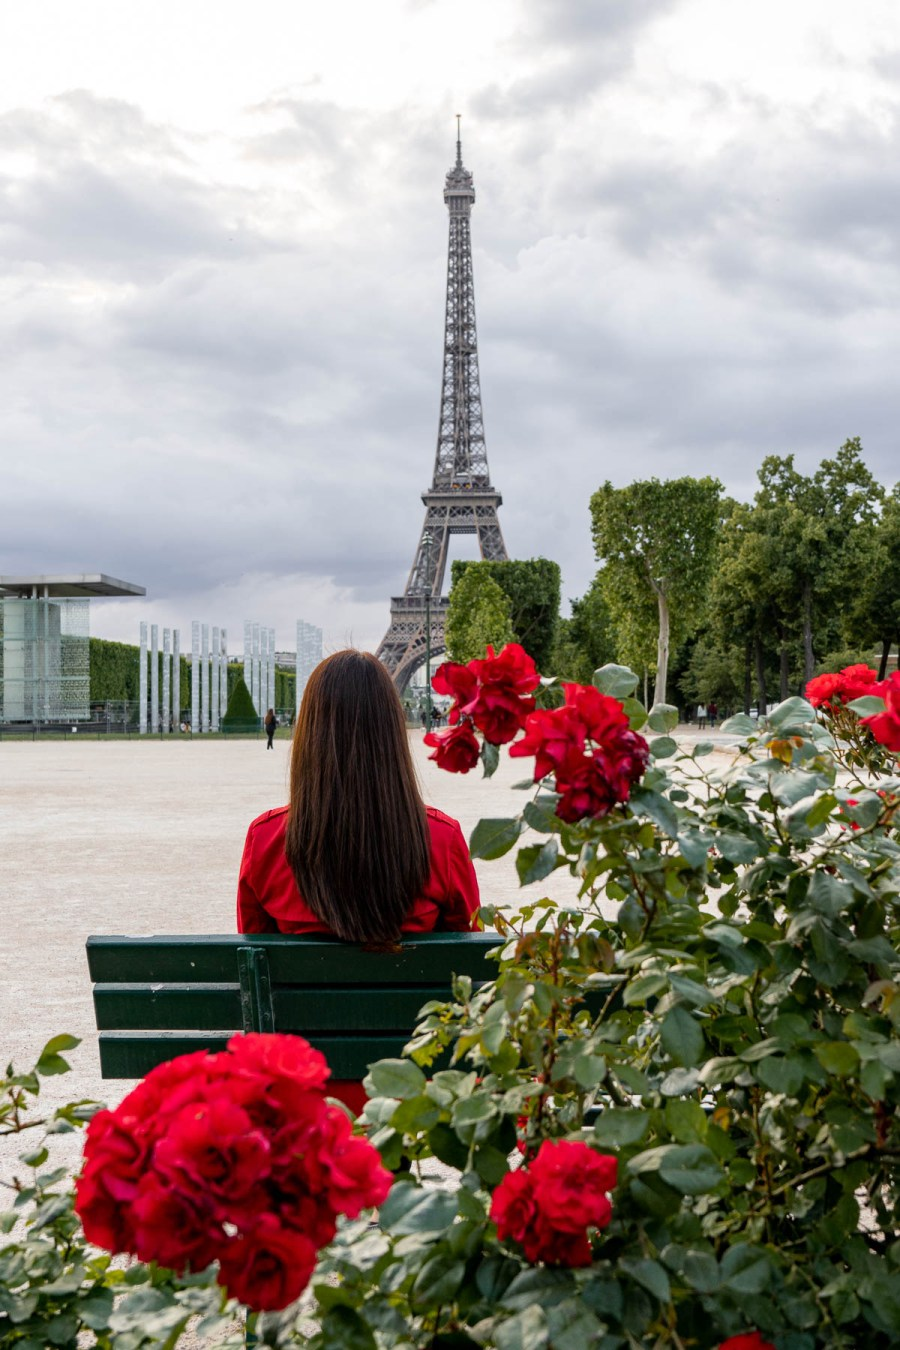 Girl in a red coat sitting on a bench, looking at the Eiffel Tower at Champ de Mars